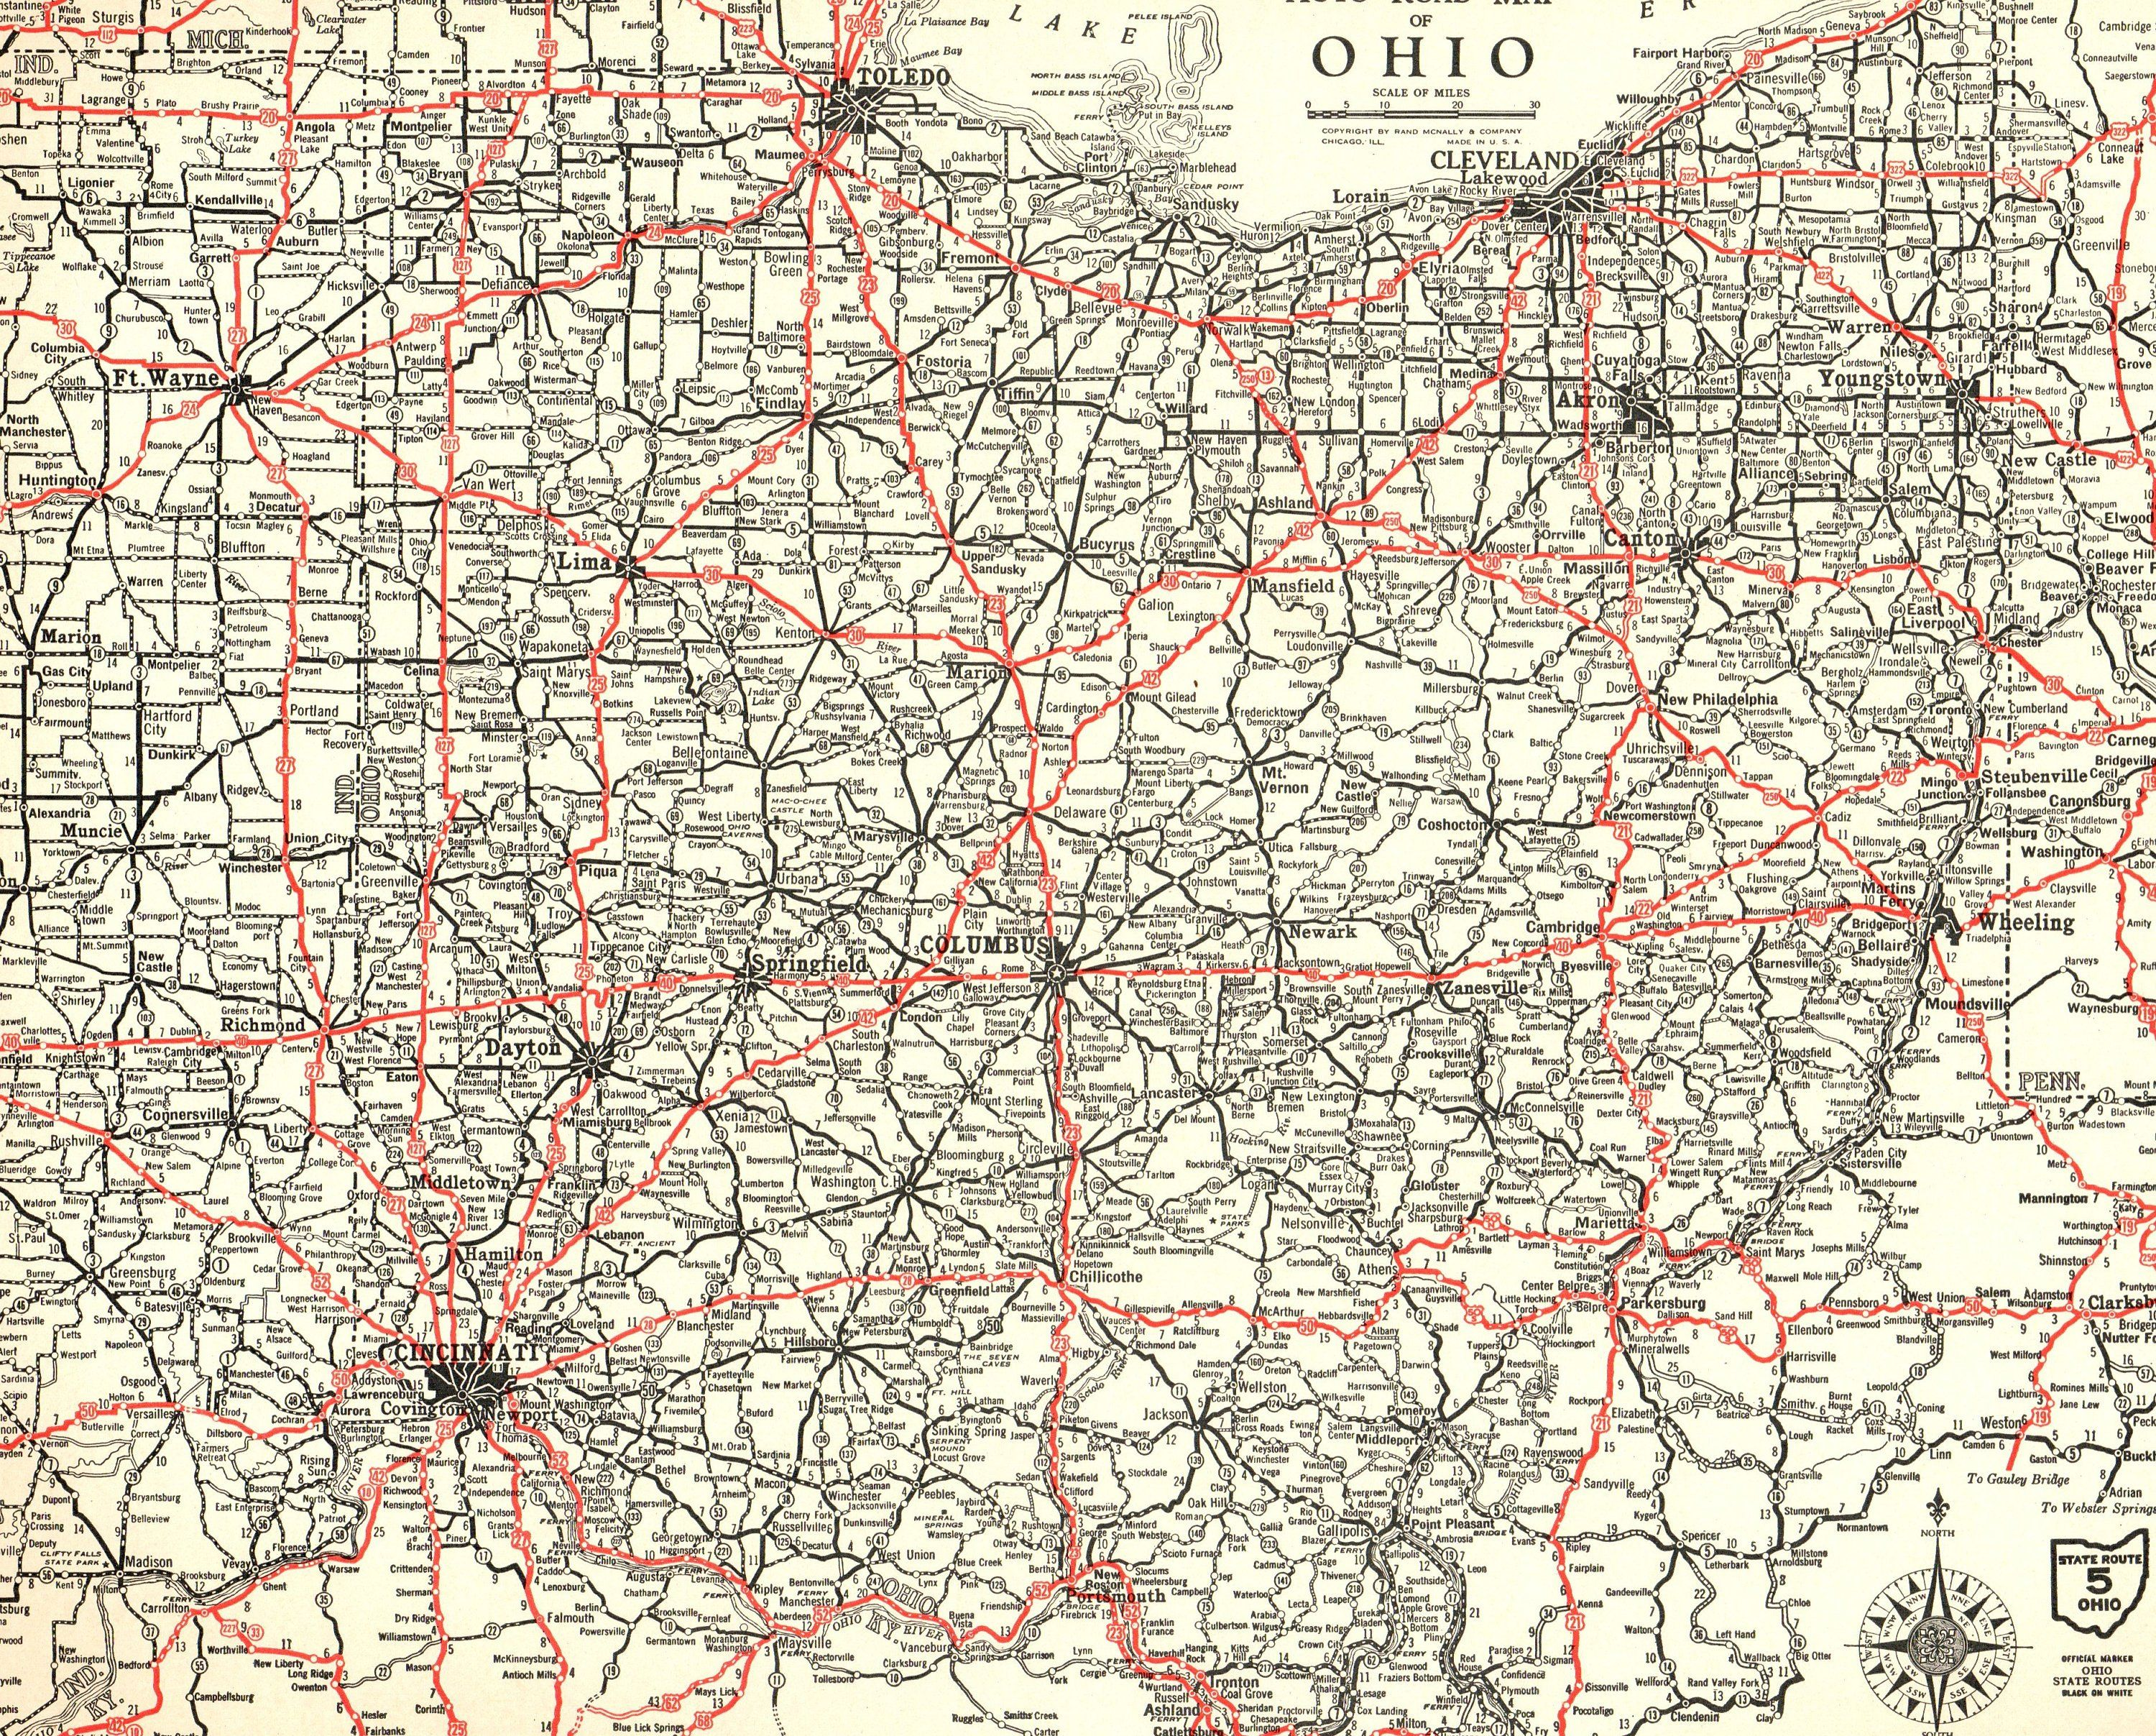 1932 Rare Size Antique OHIO Map of Ohio Poster Size AUTO